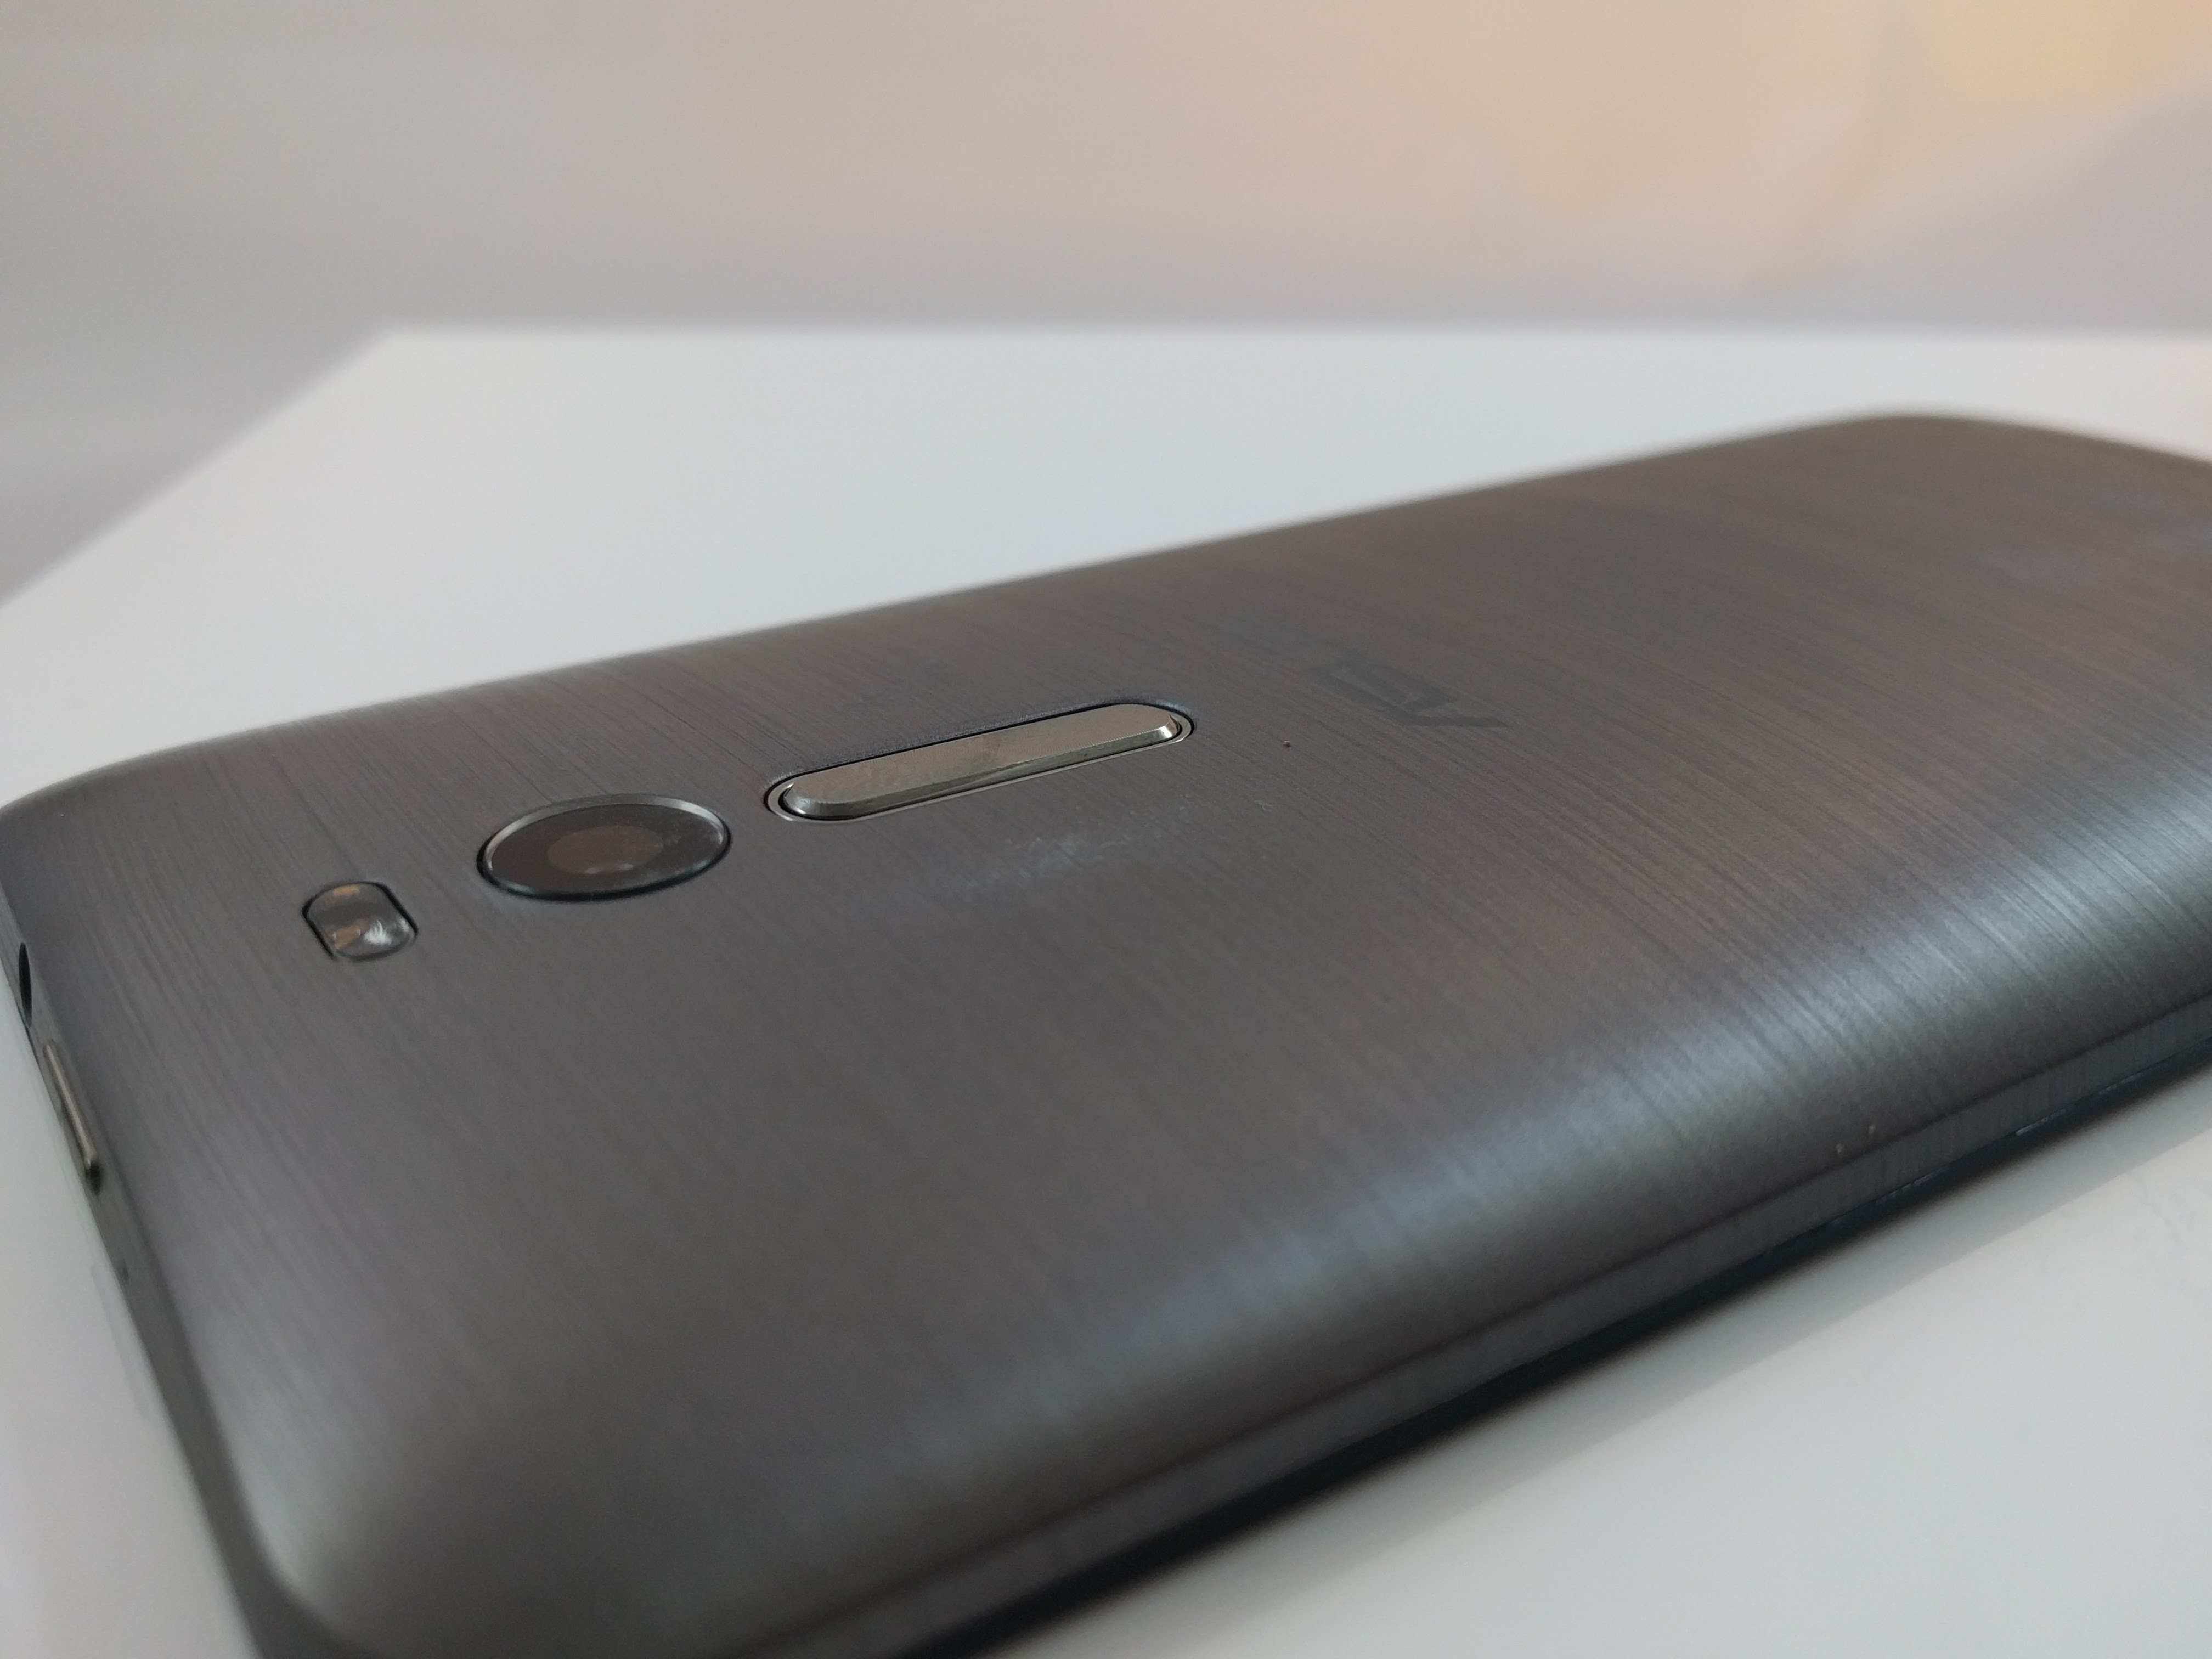 The Asus Zenfone 2 is the perfect example of why unlocked phones will rule the market in 2016 Review